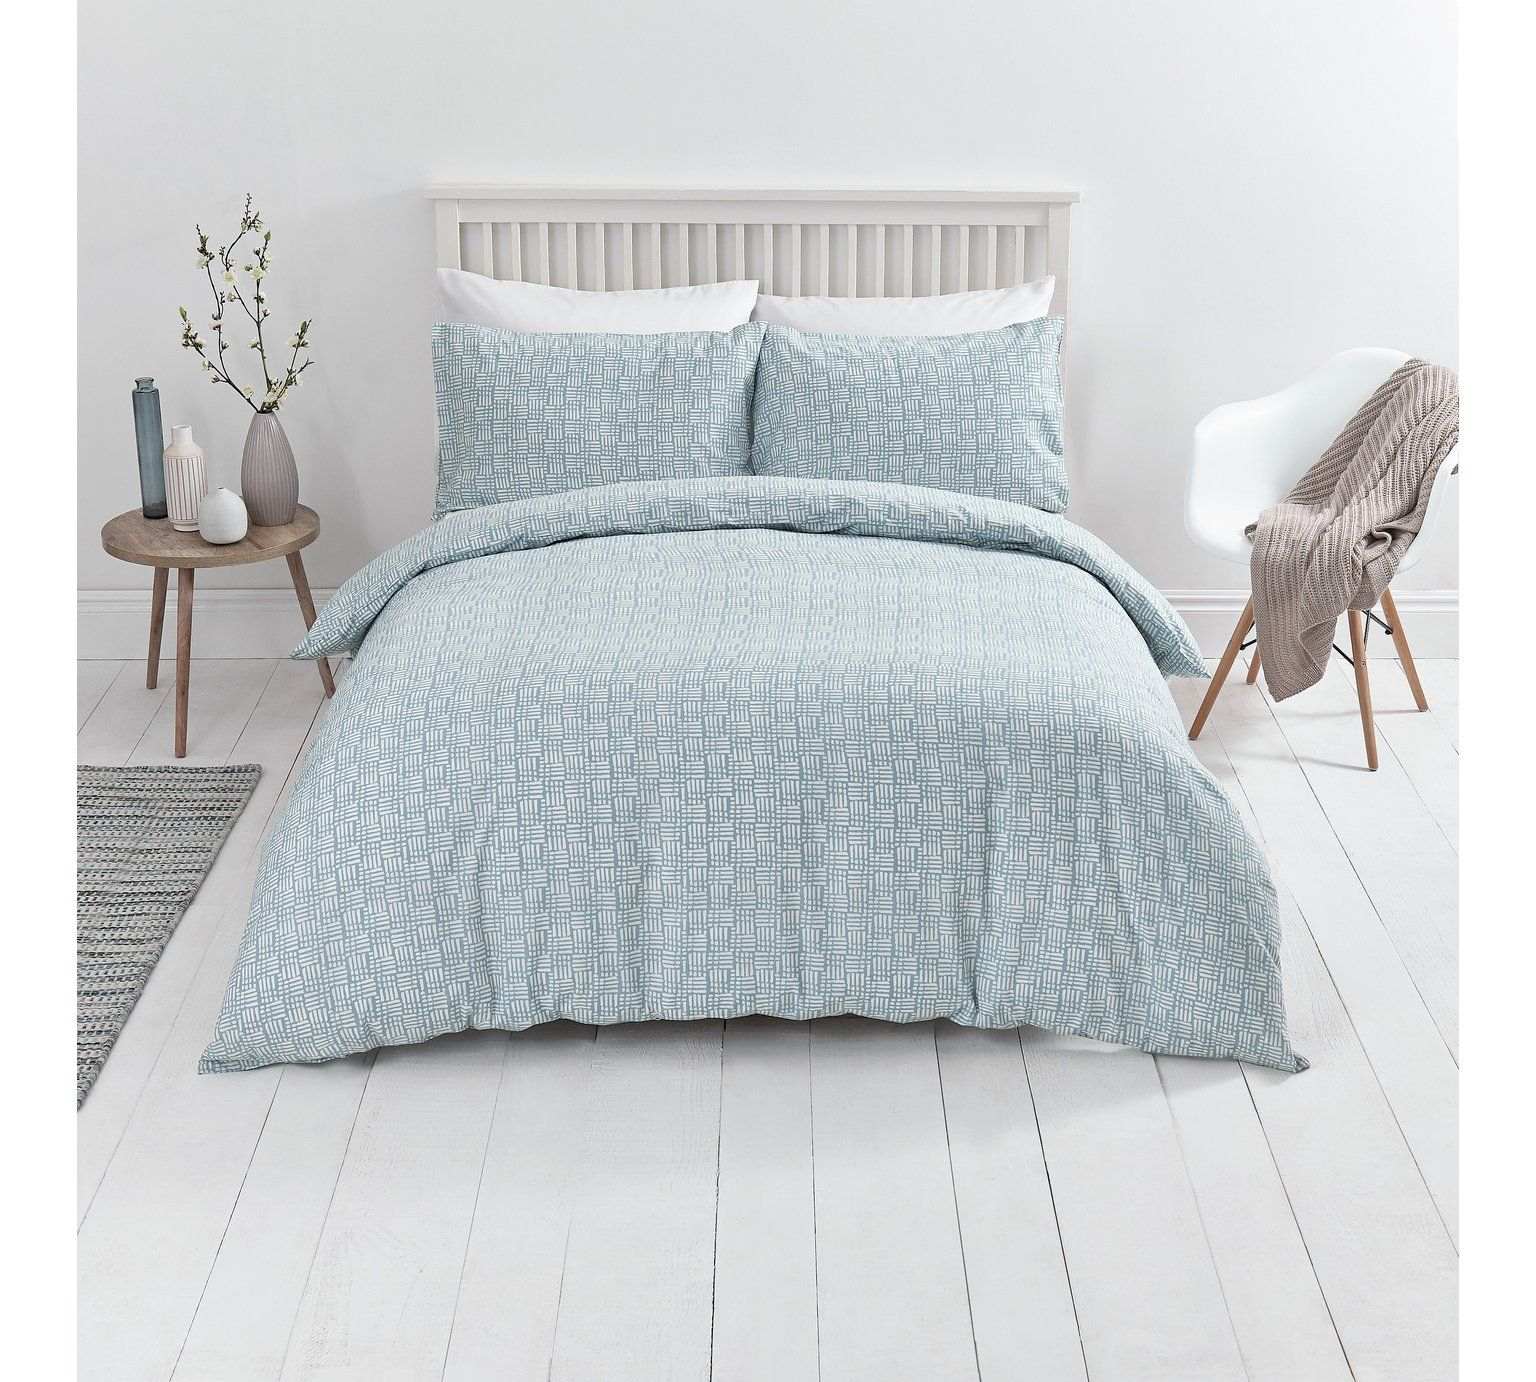 Buy Duvet Cover Buy Sainsbury S Home Blue Nordic Sky Duvet Cover Set Kingsize At